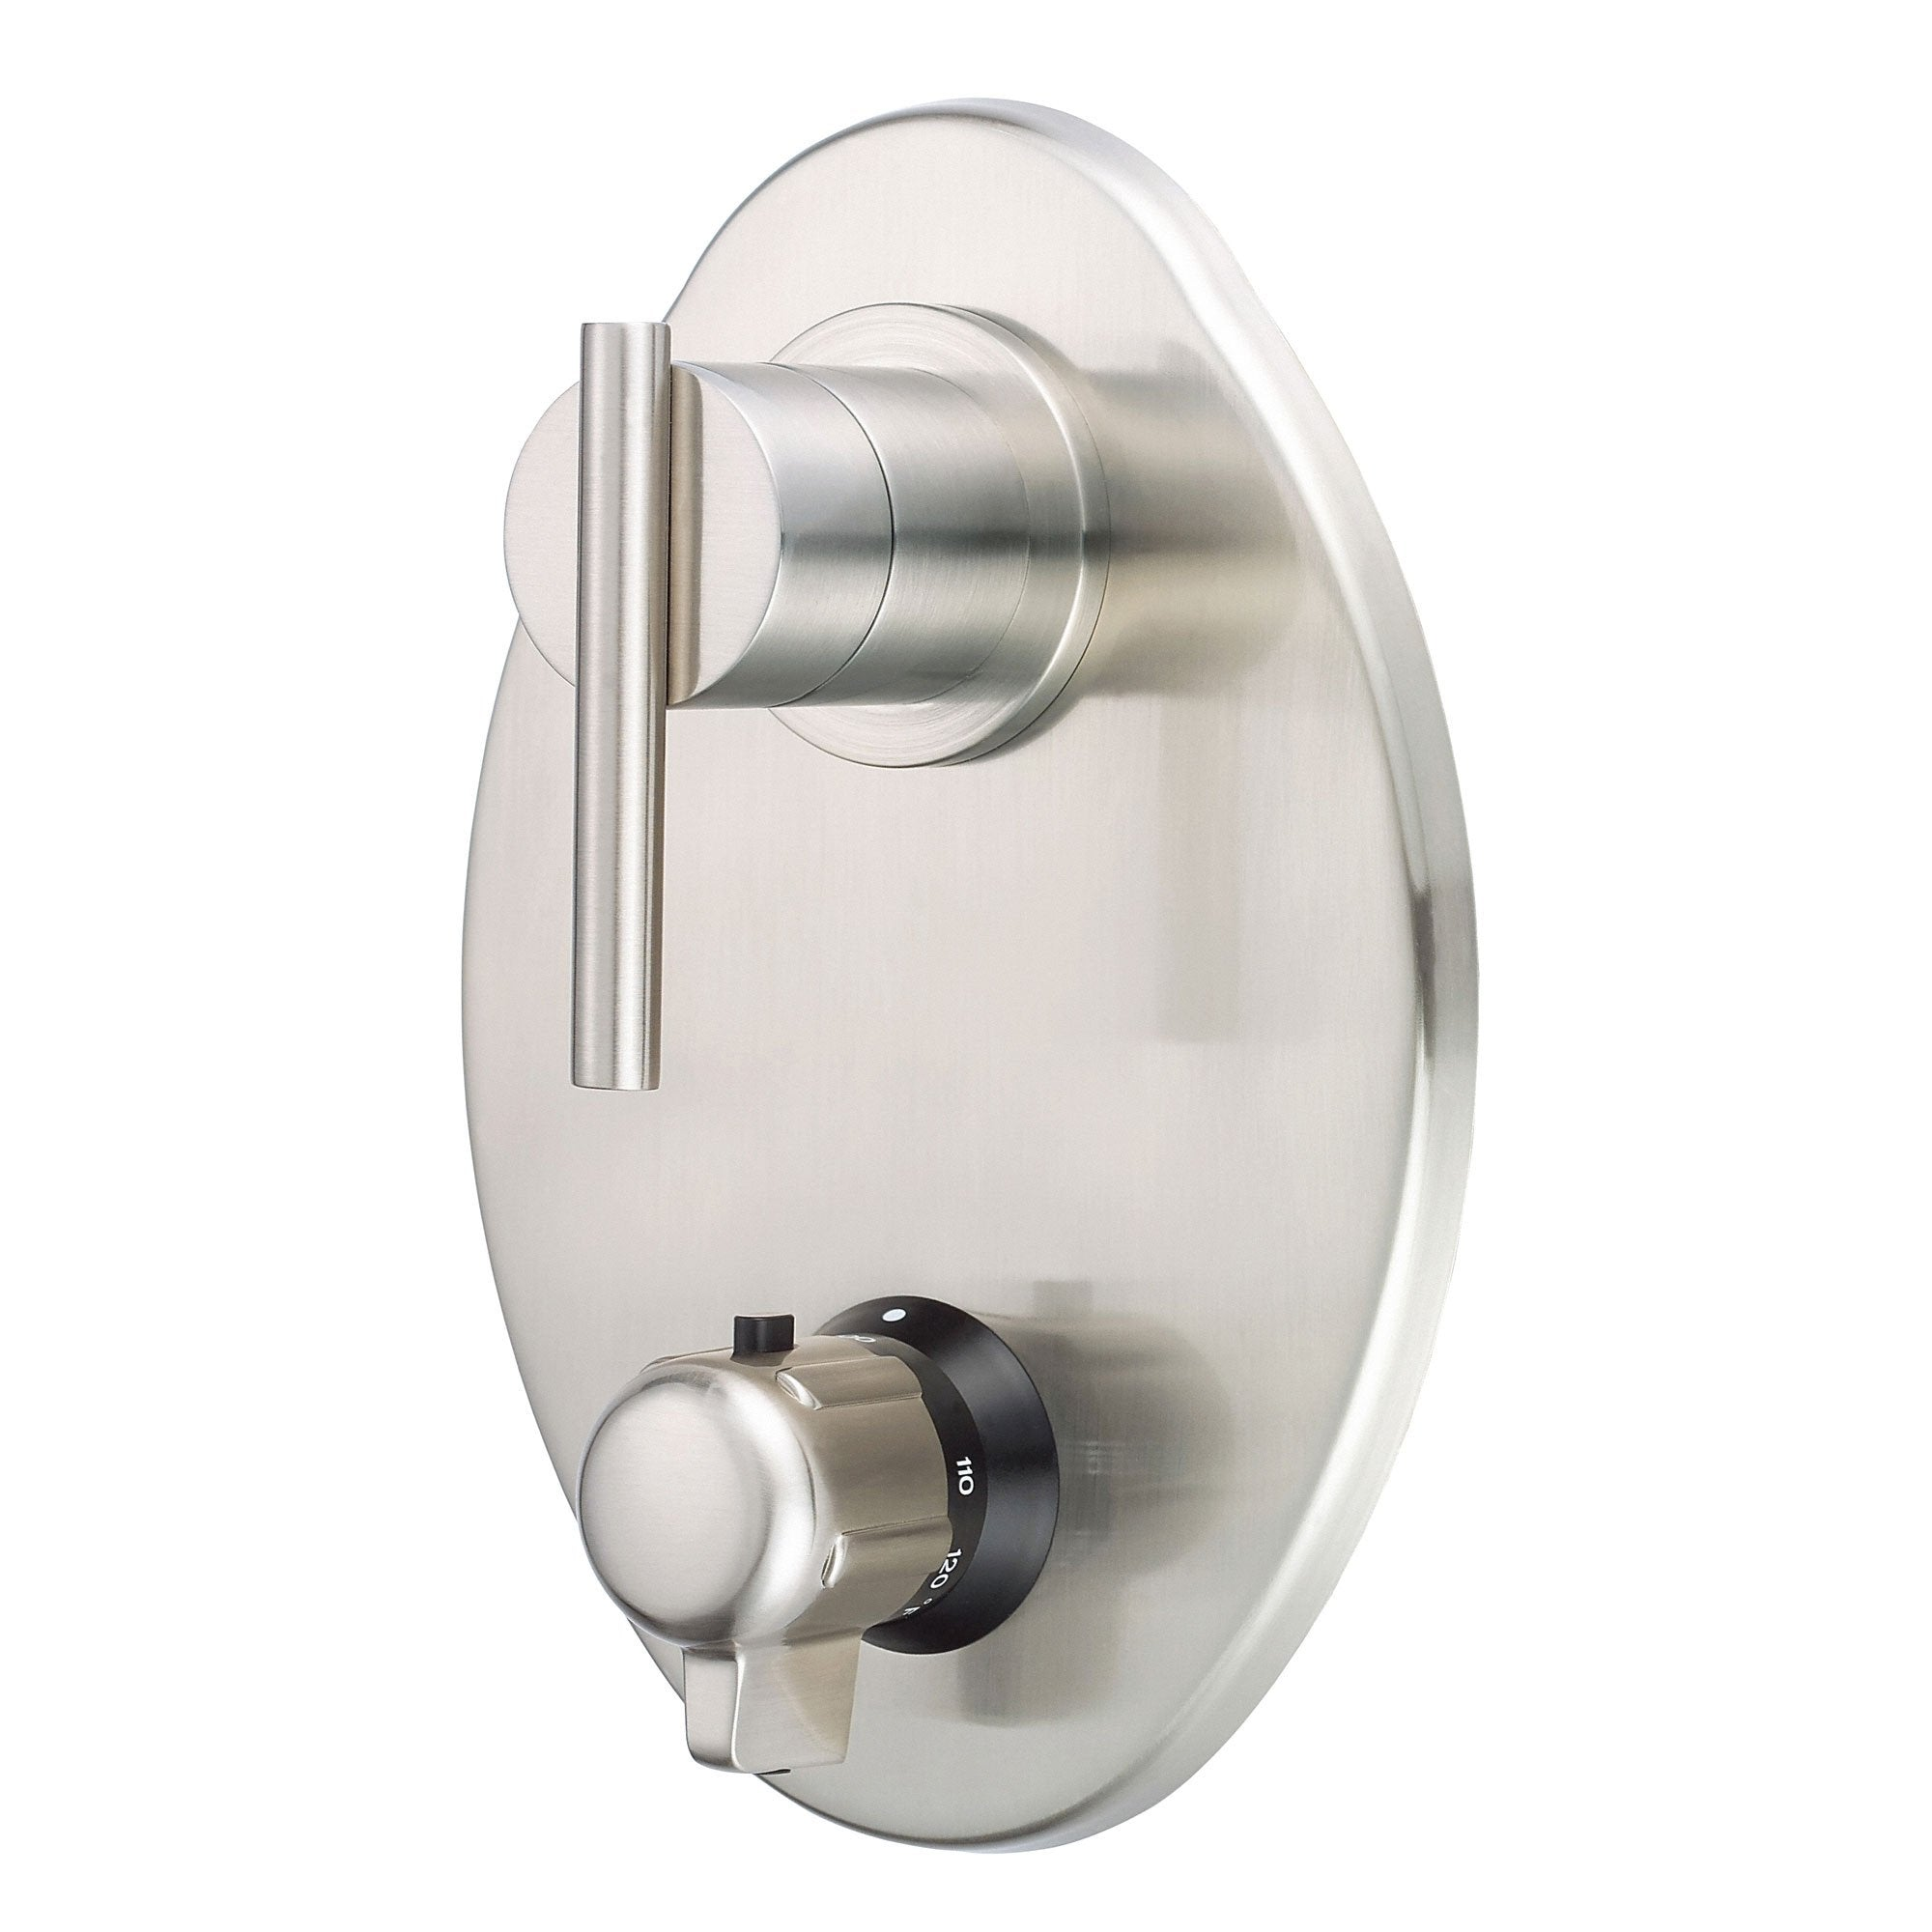 "Danze Parma Brushed Nickel 1/2"" Thermostatic Shower Faucet Control INCLUDES Rough-in Valve"